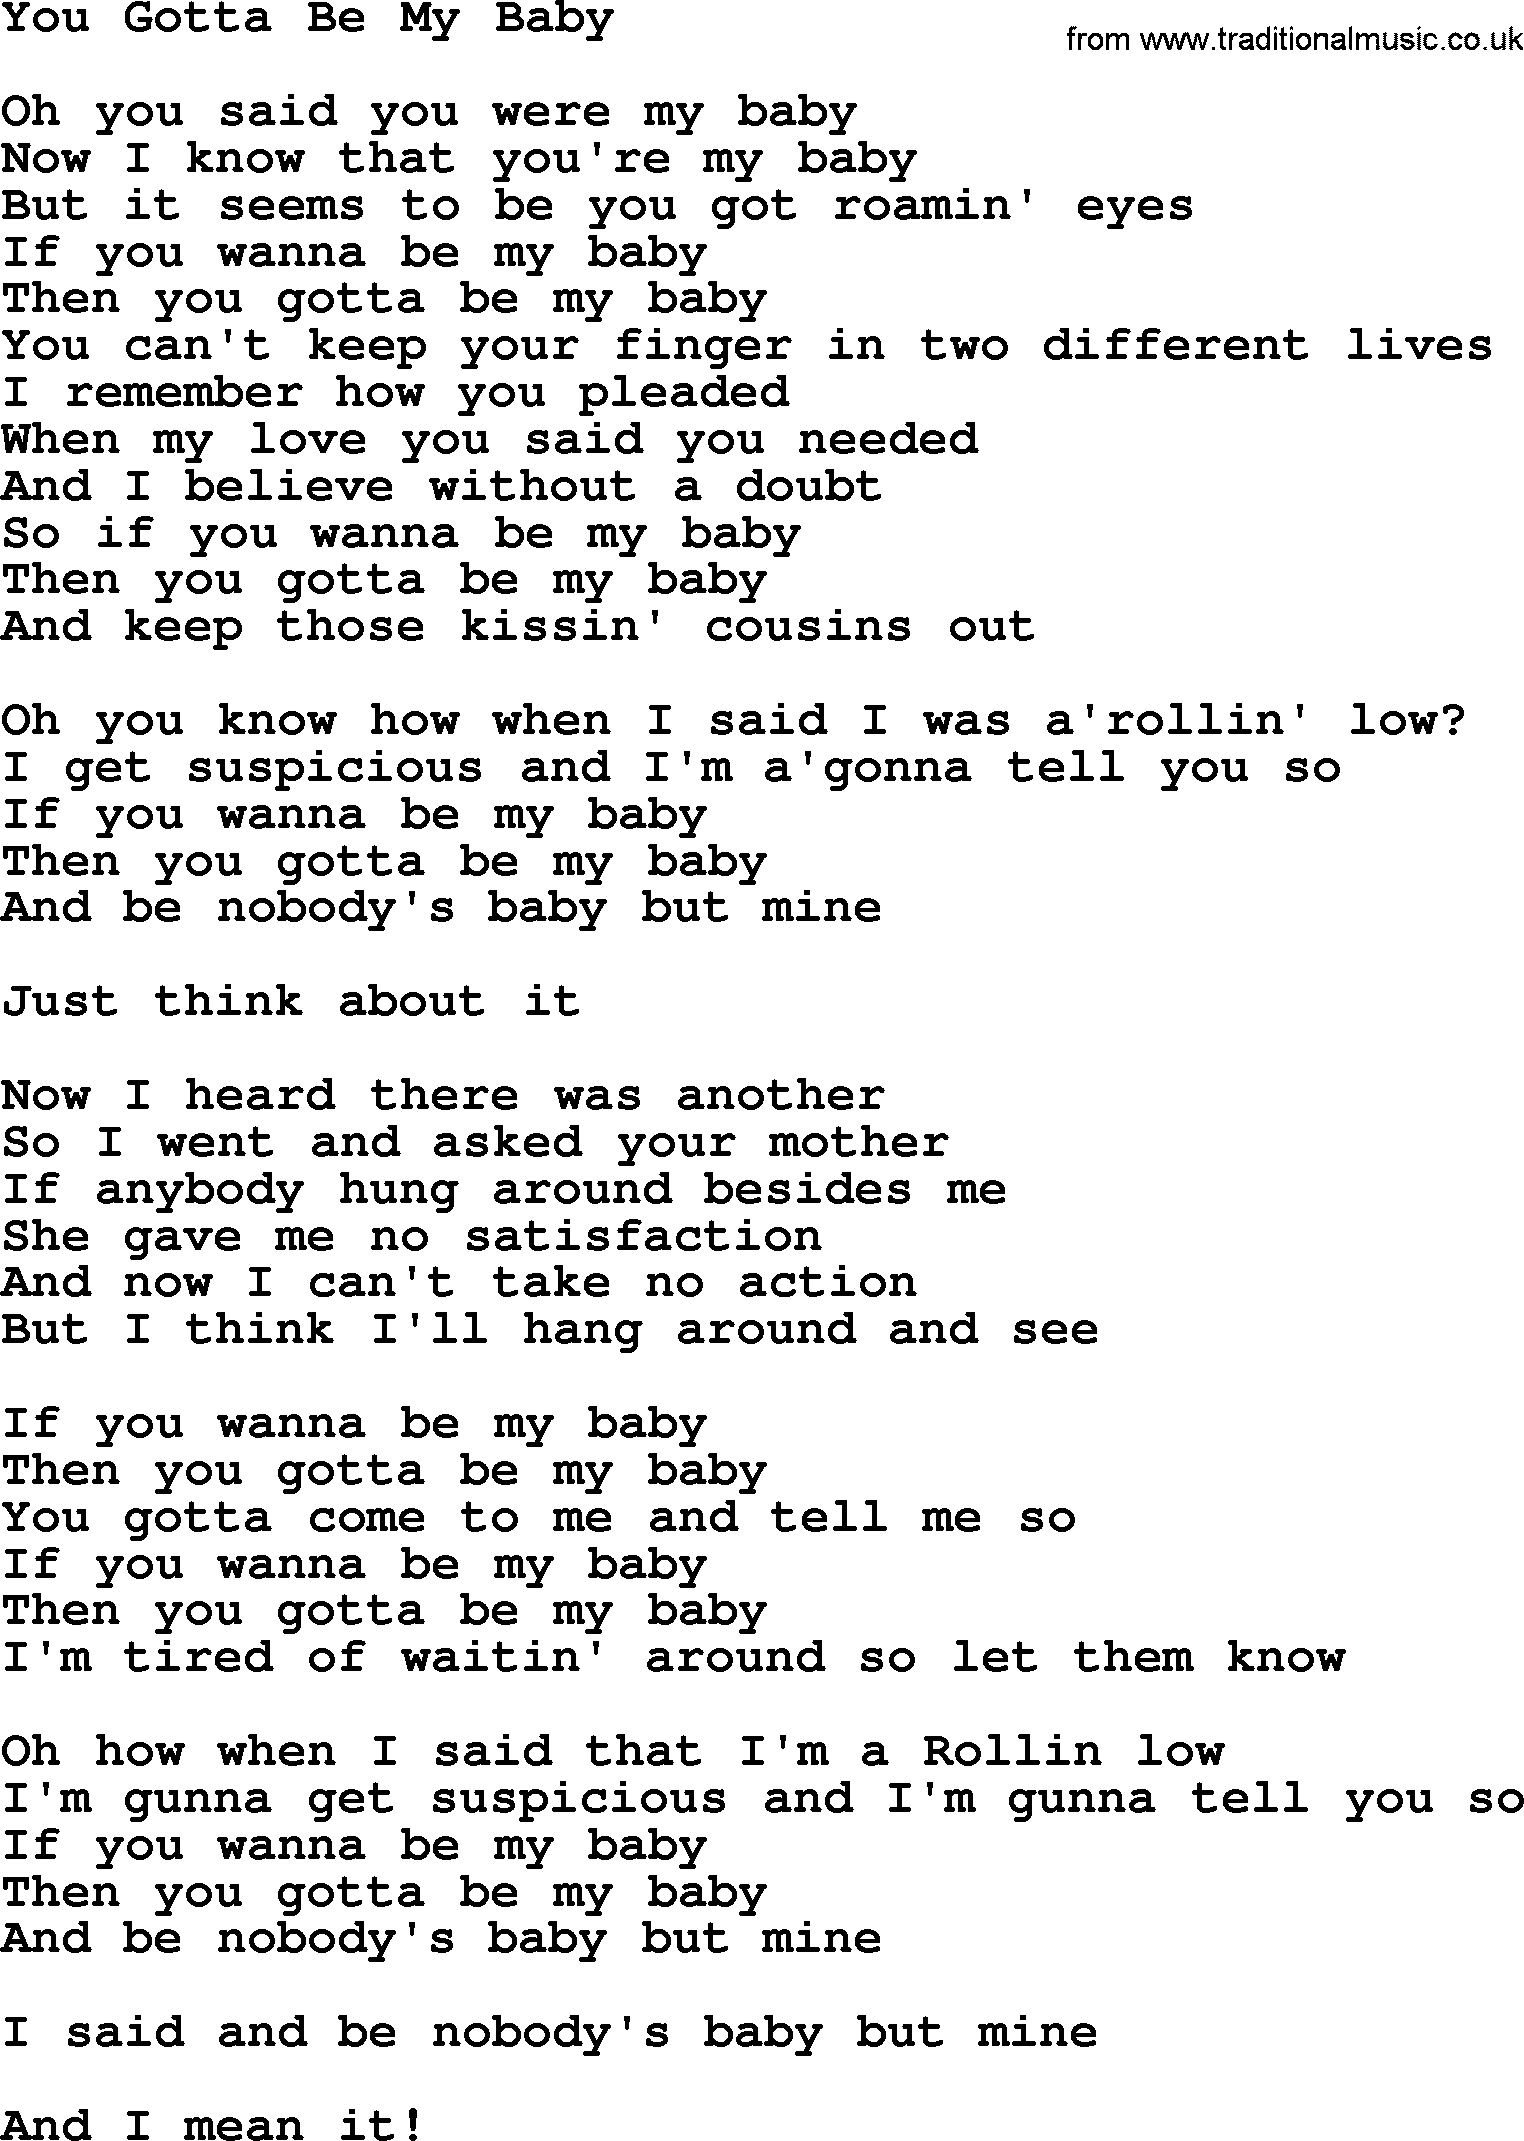 Dolly Parton Song You Gotta Be My Baby Lyrics Just to see you smile lyrics by why don t we. traditional music library